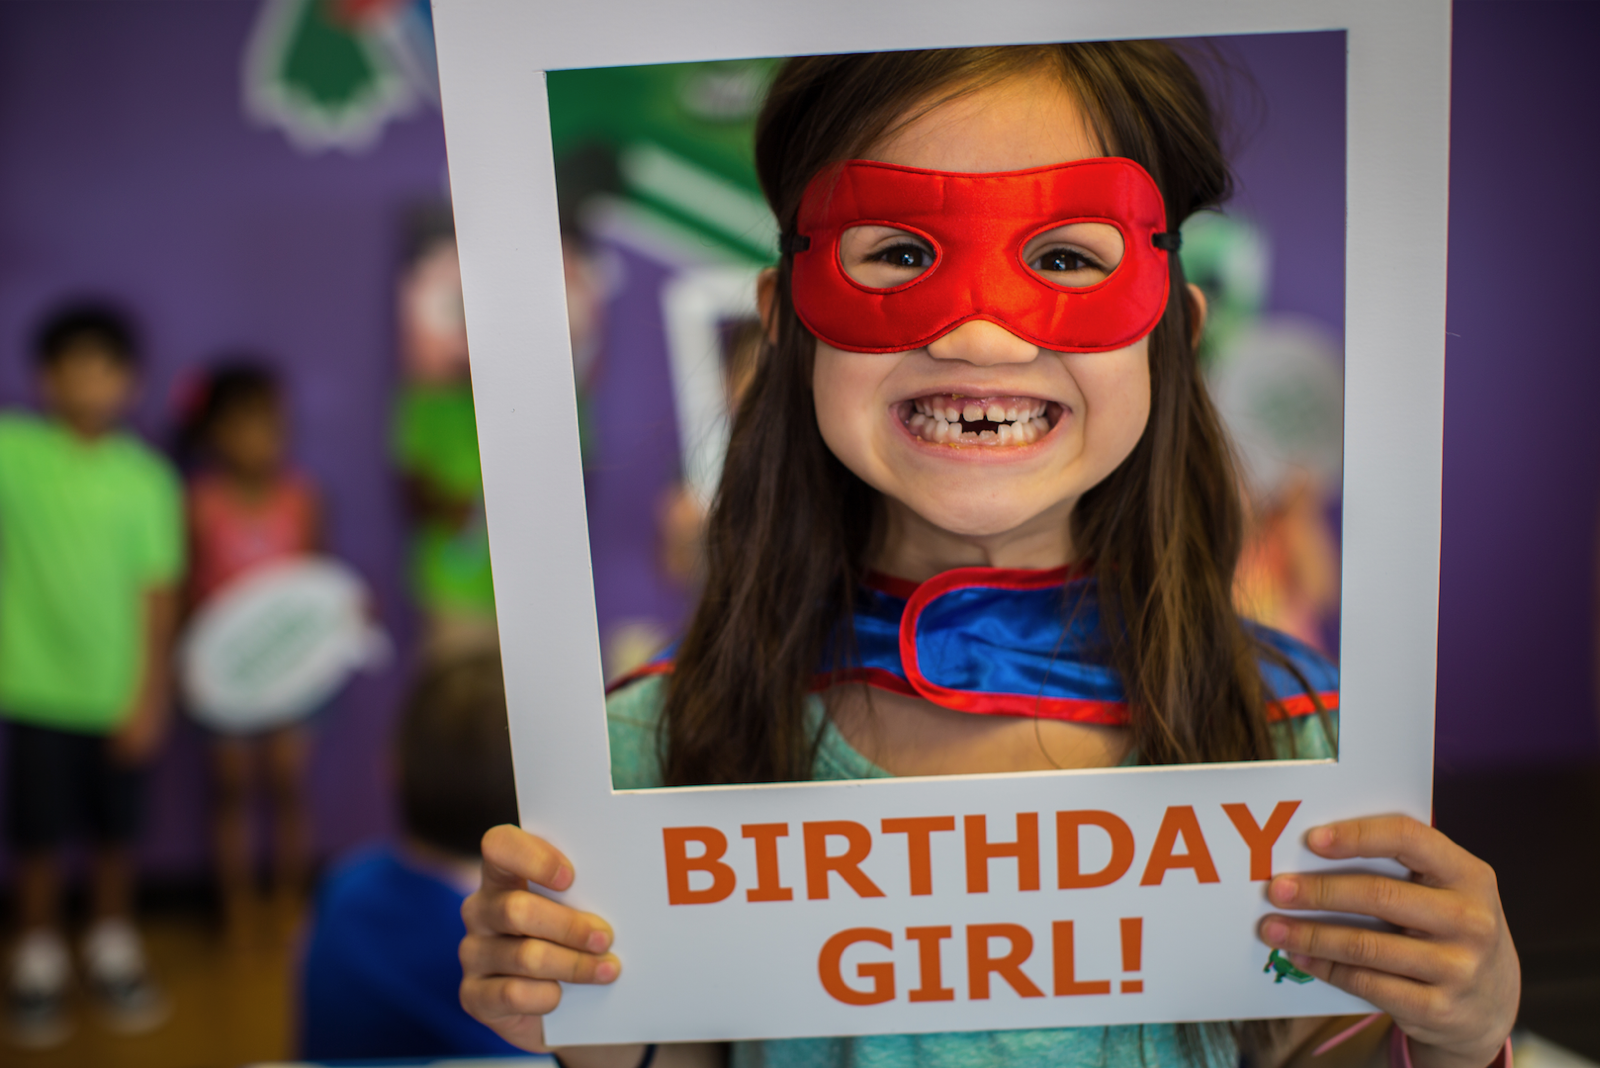 Does your child have a birthday coming up? Life can be stressful, but party planning doesn't have to be! There are so many party options available in the King of Prussia area, you are guaranteed to throw an awesome party your child will never forget. Check out some of these top birthday party activities that will definitely get your little one excited about their big day!